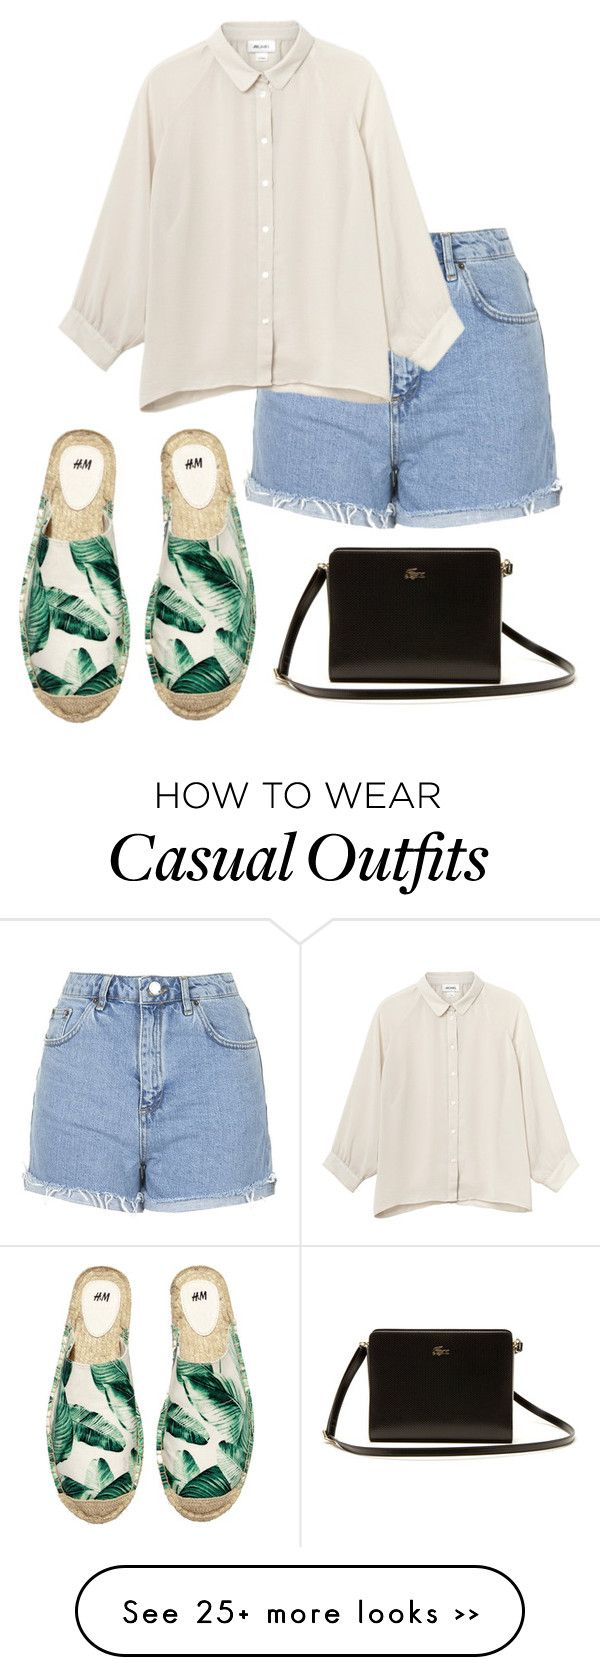 """""""Outfit of the Day: Casual"""" by fashionbloggerwannabe on Polyvore"""